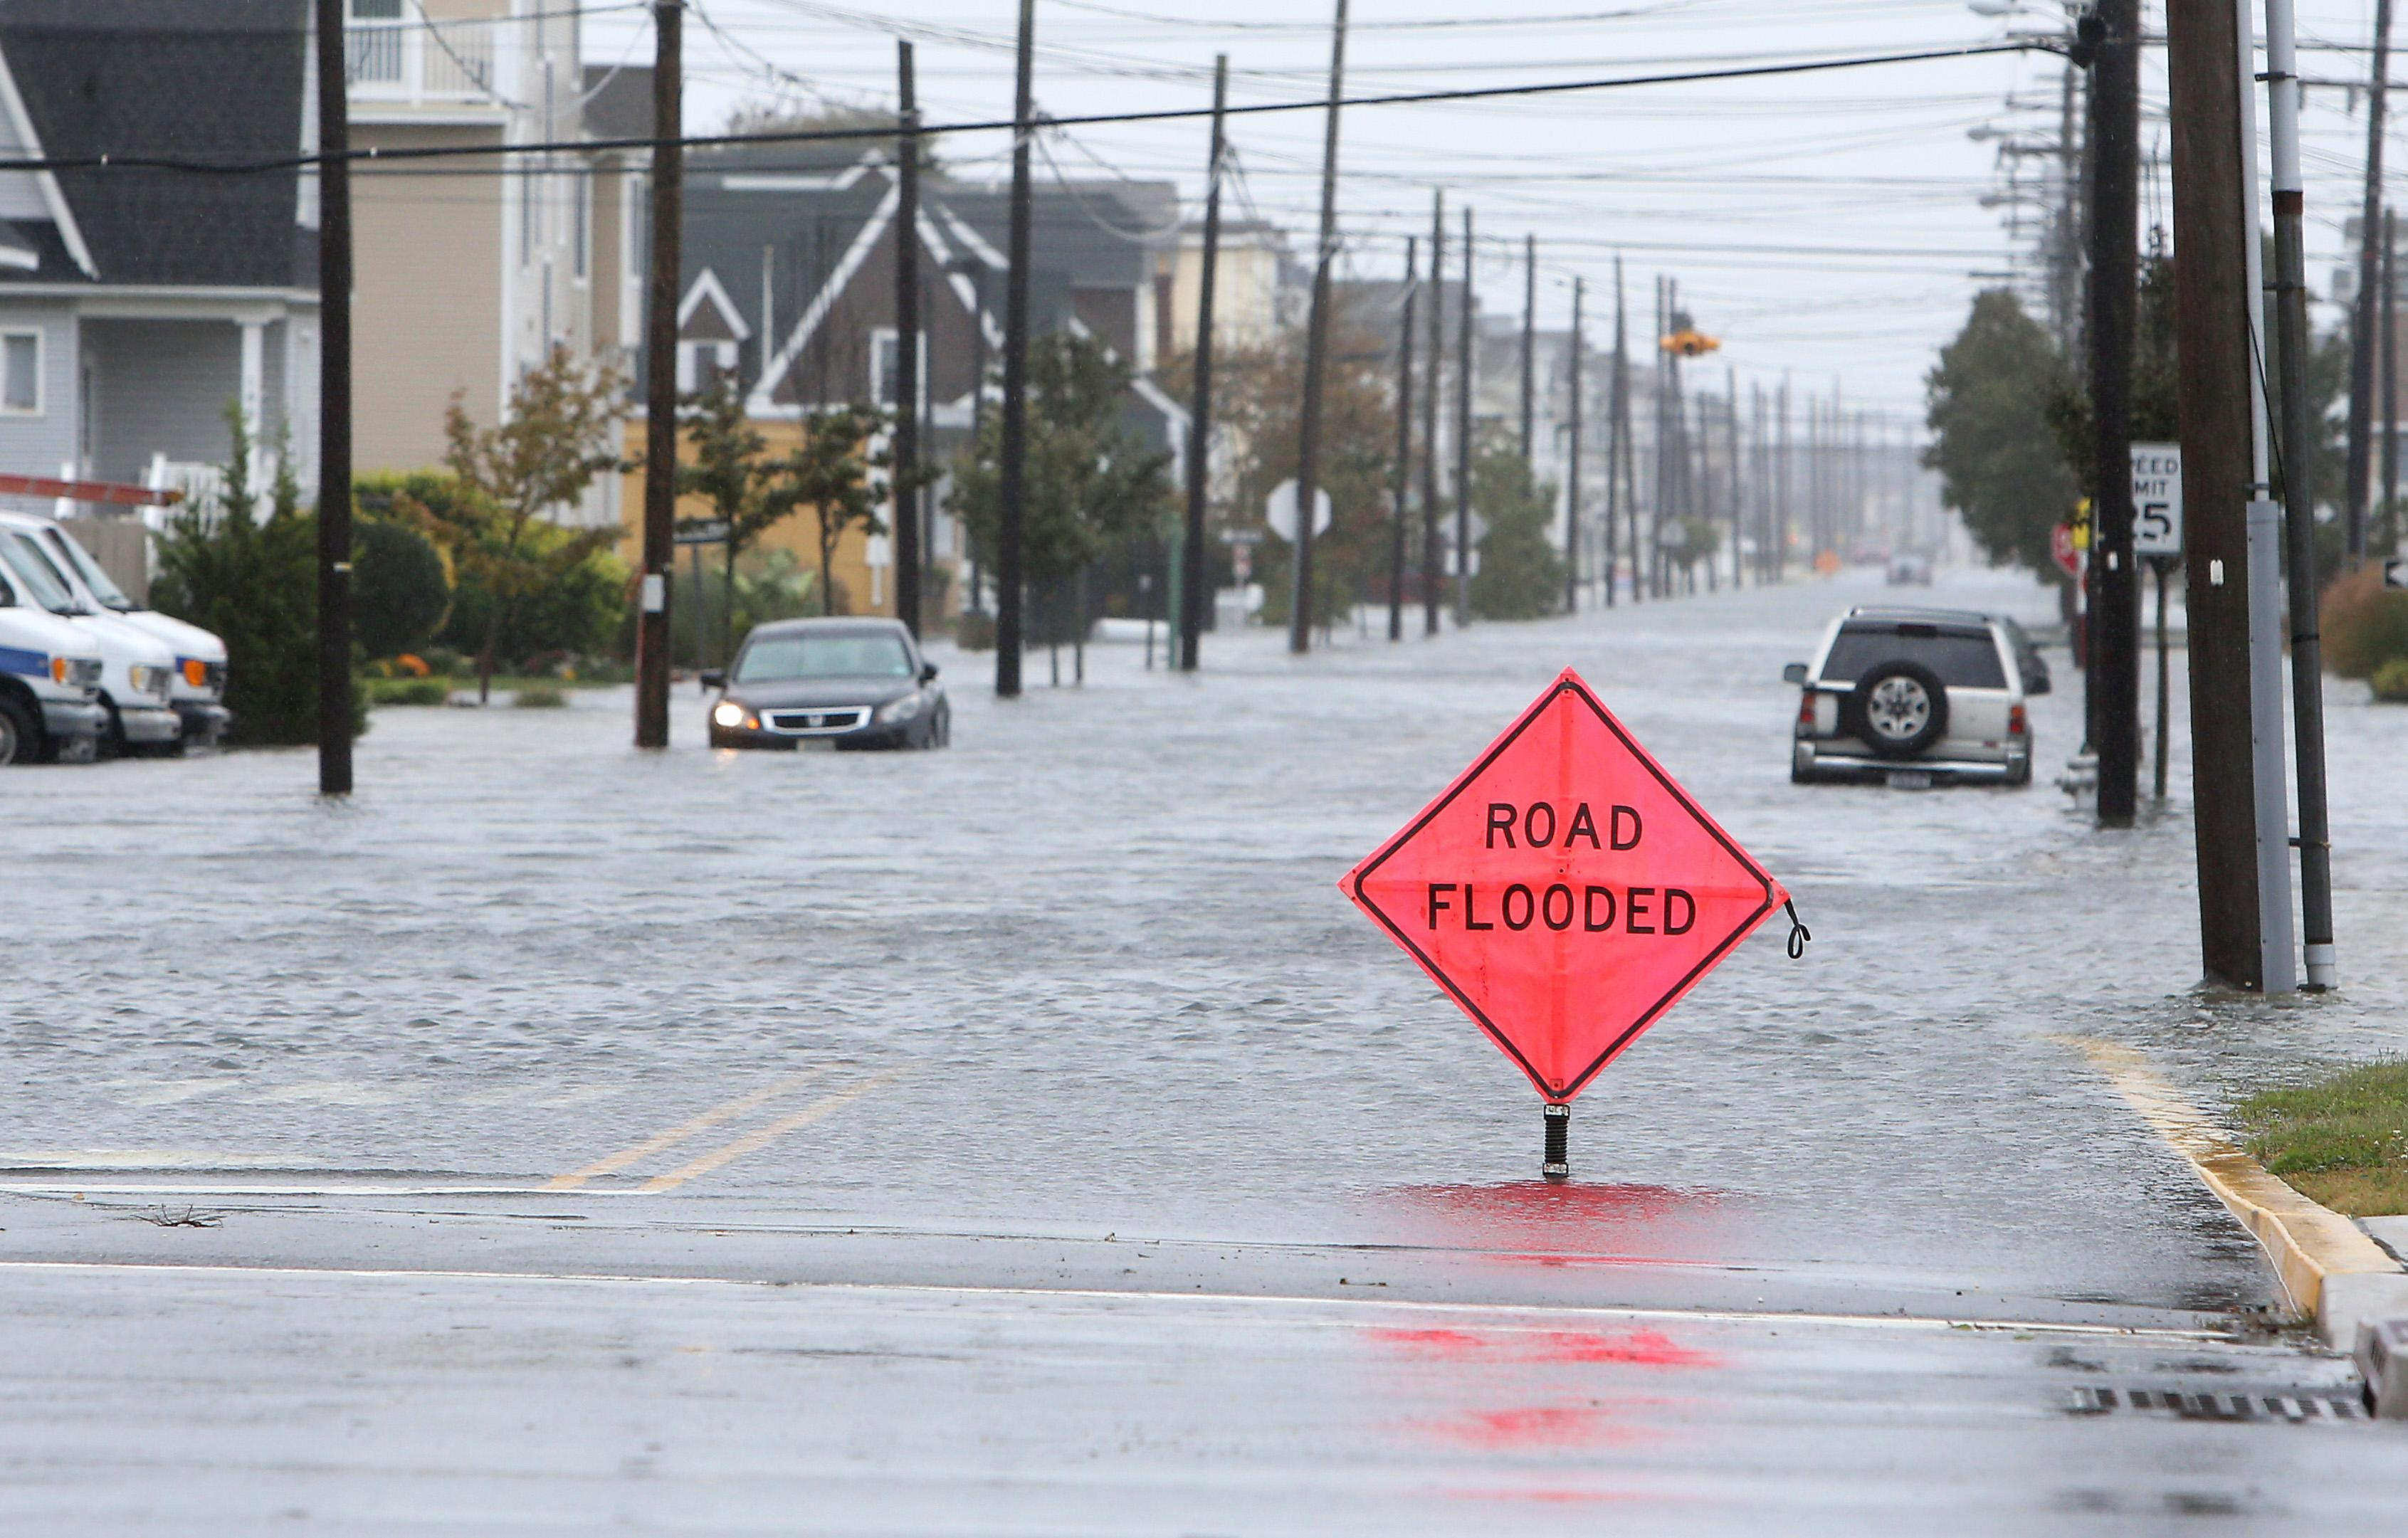 hurricane joaquin likely to spare east coast but flooding looms